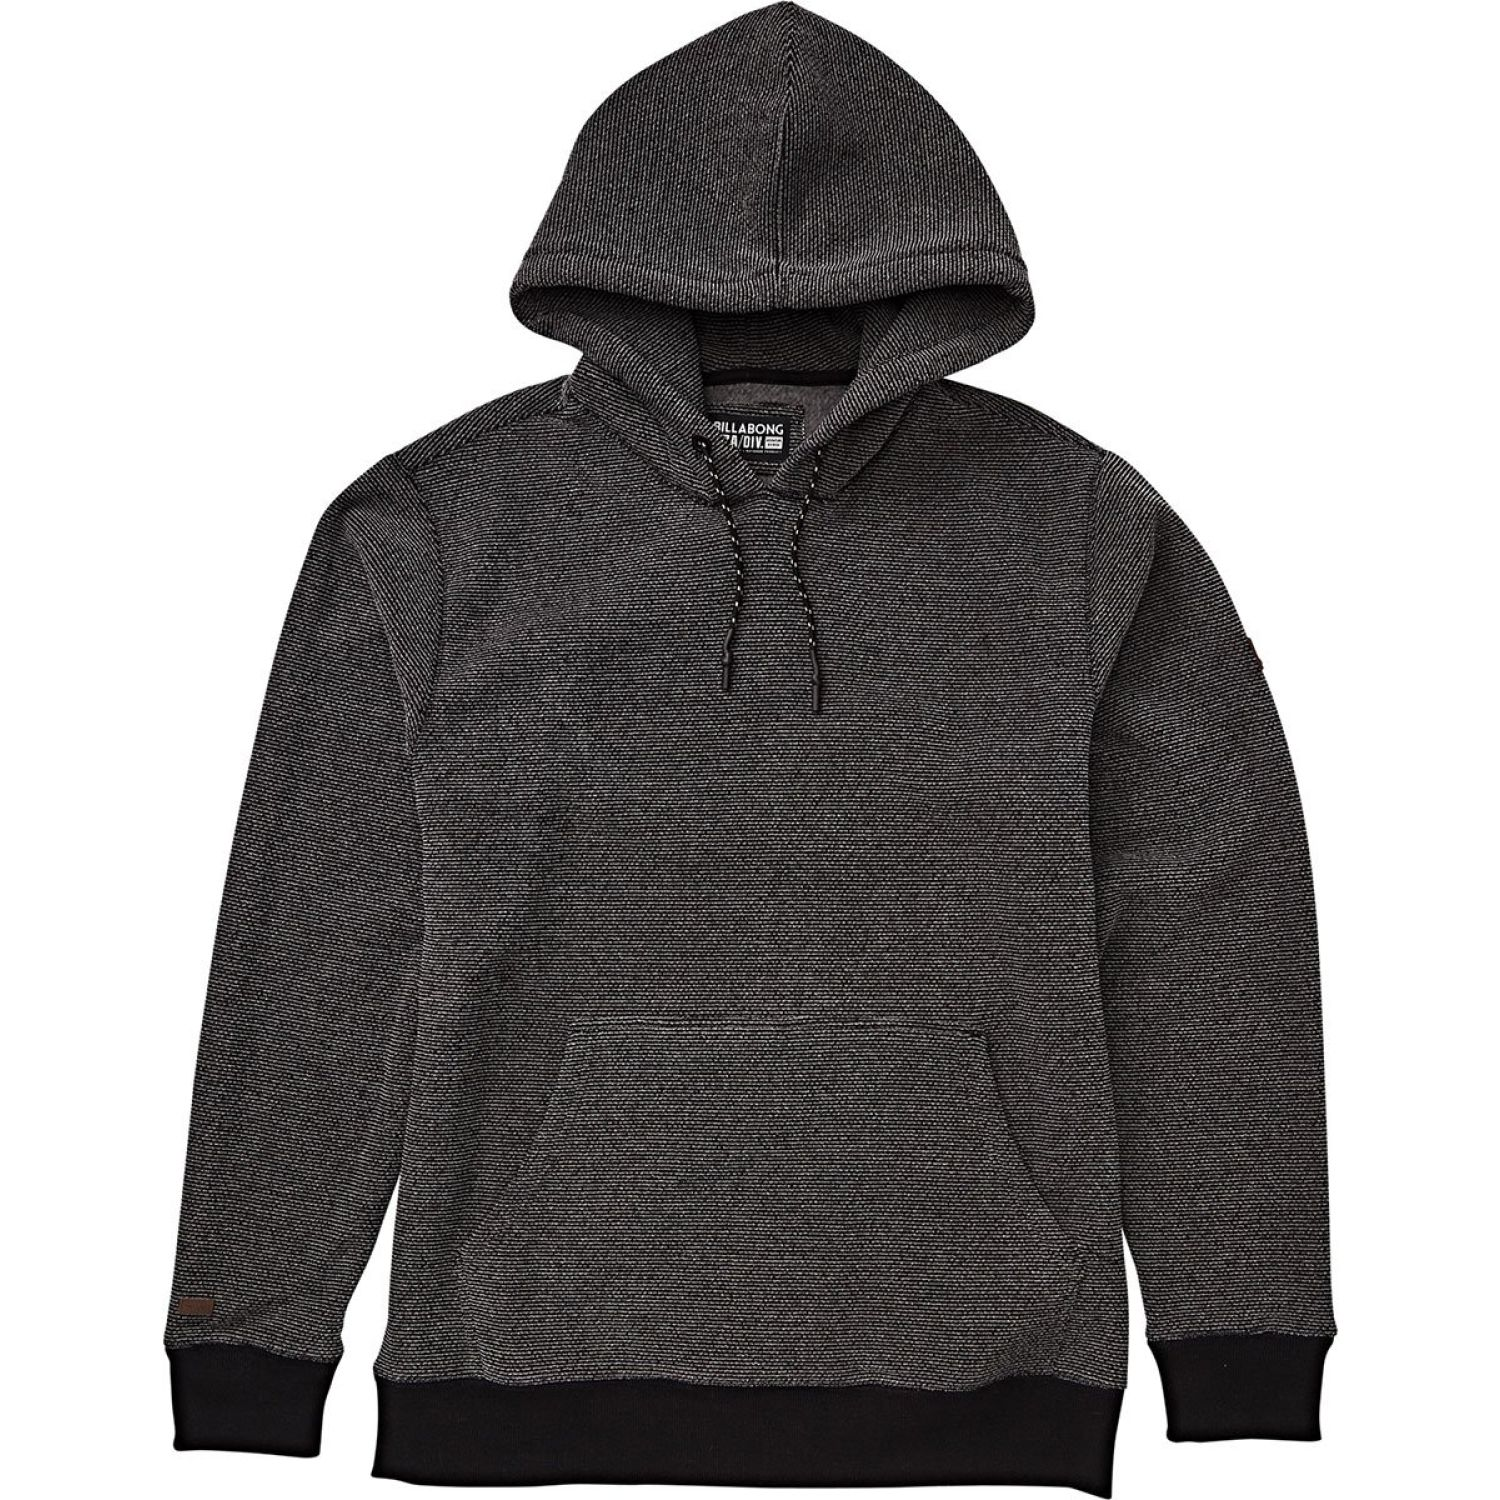 Billabong OUTPOST PULLOVER Plomo Hoodies y Sweaters Fashion